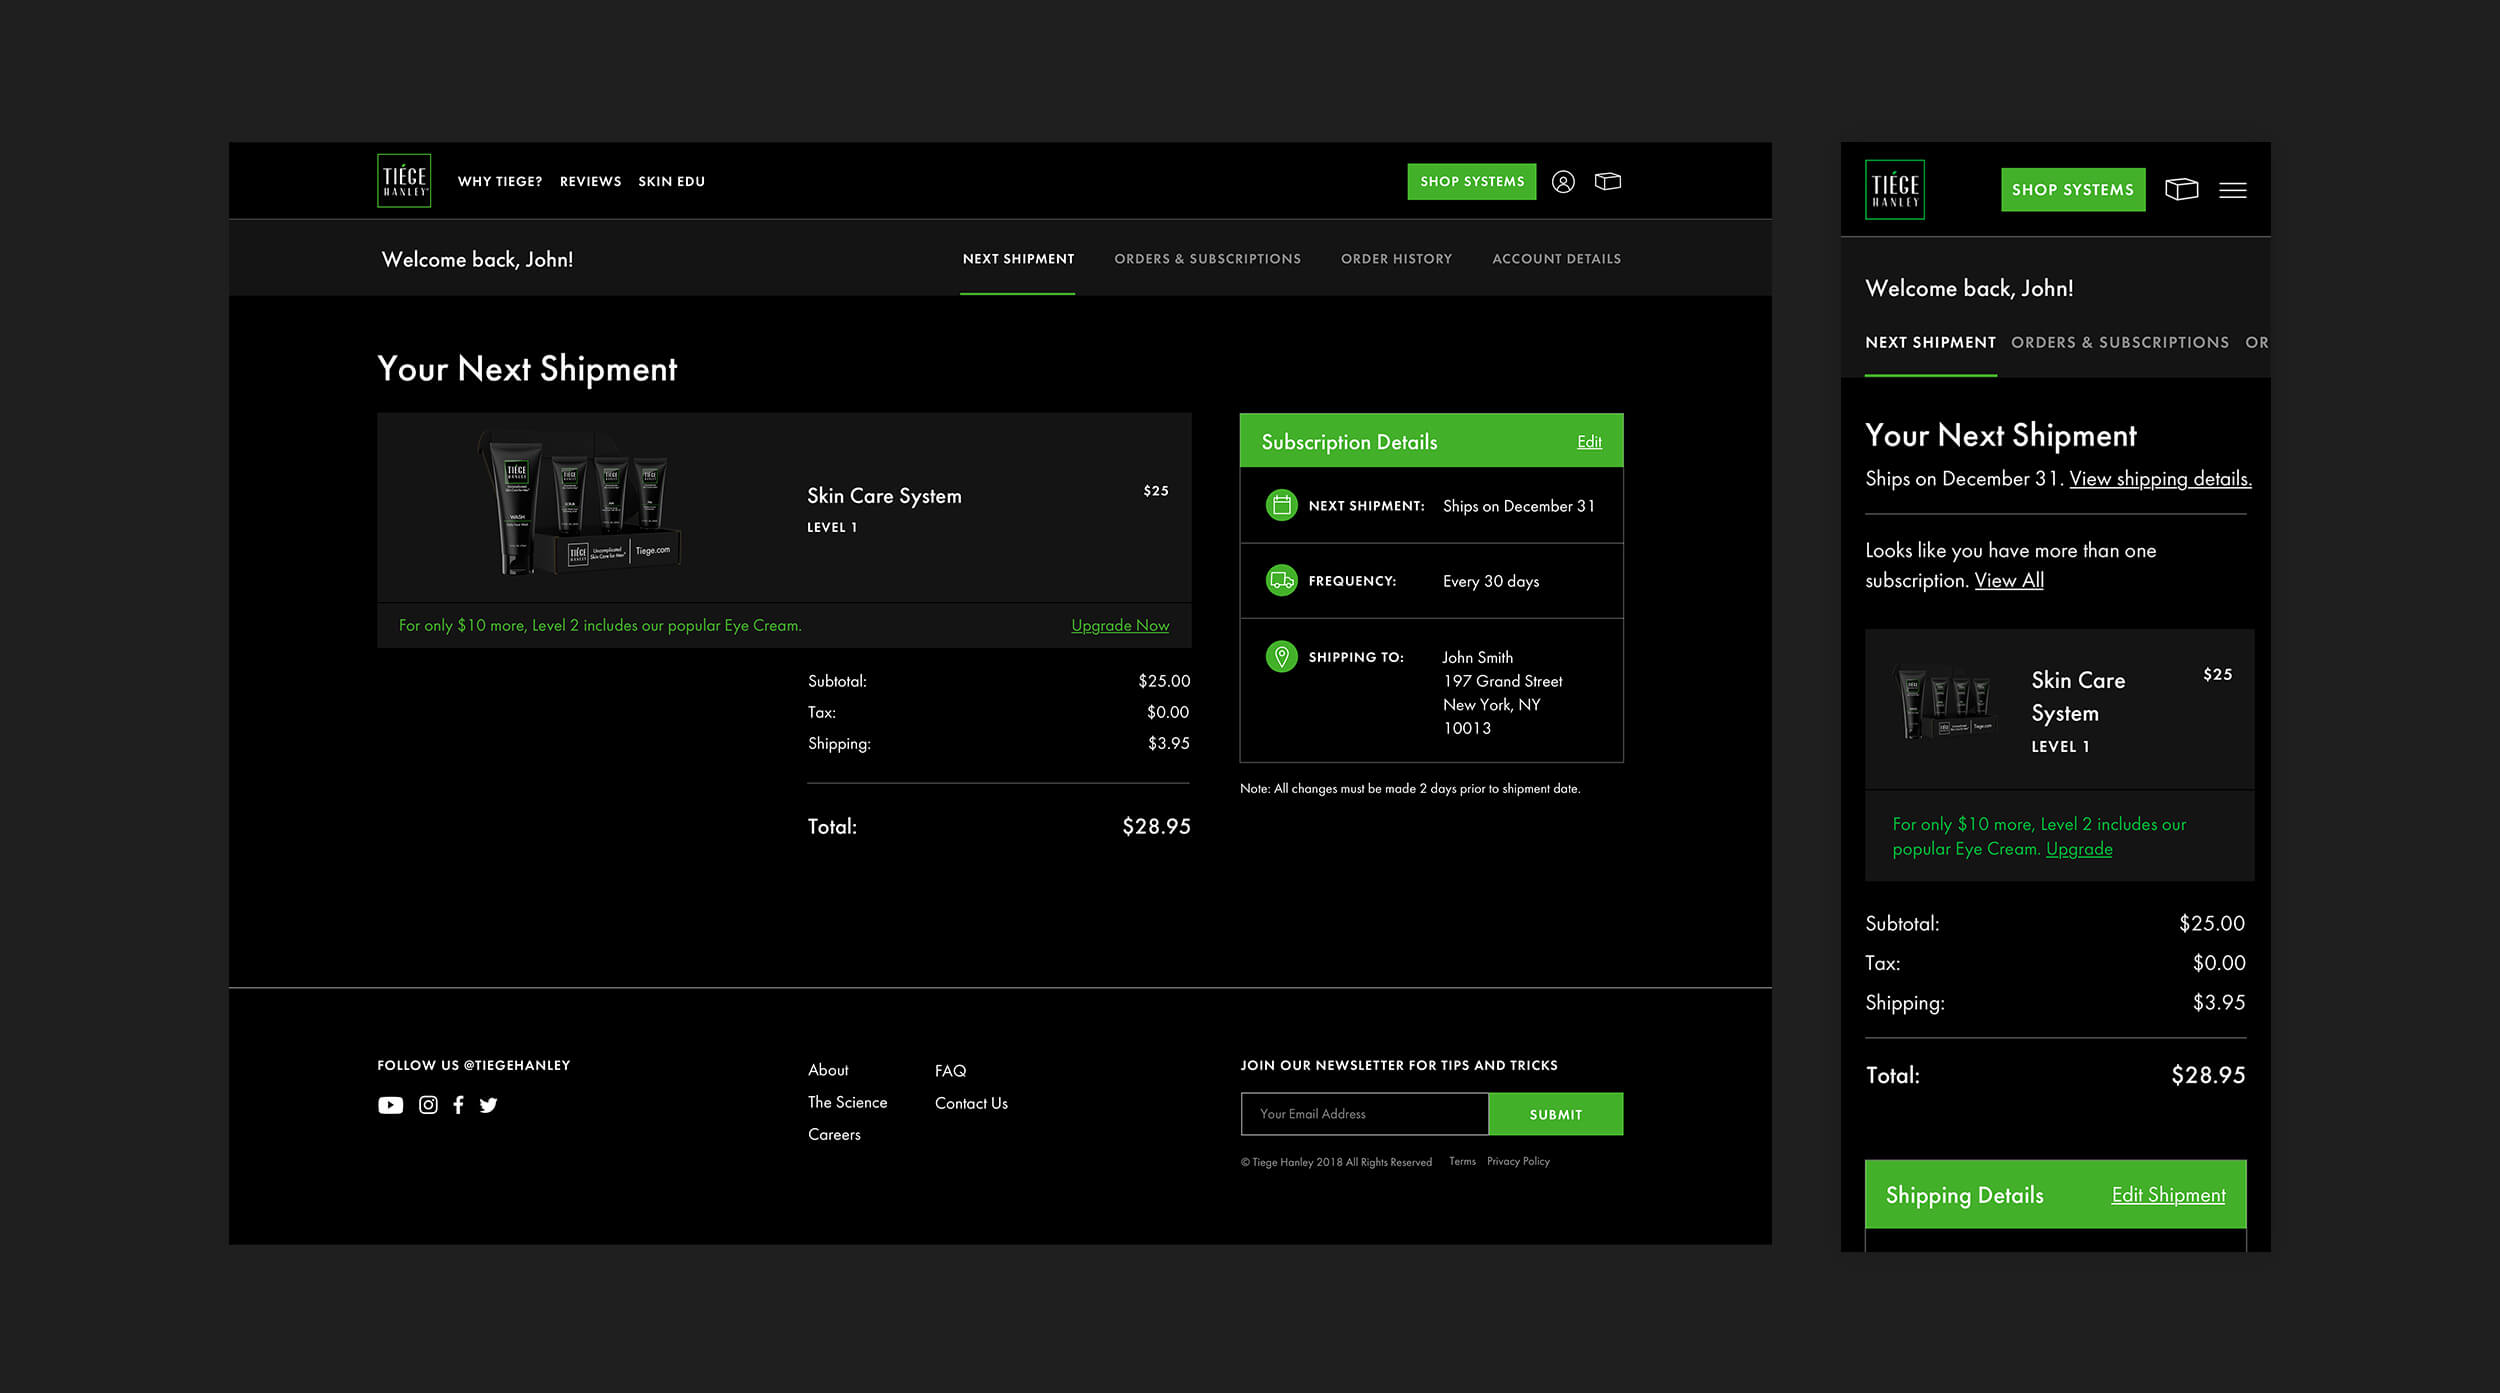 Barrel designed Tiege Hanley's Recharge subscription dashboard.